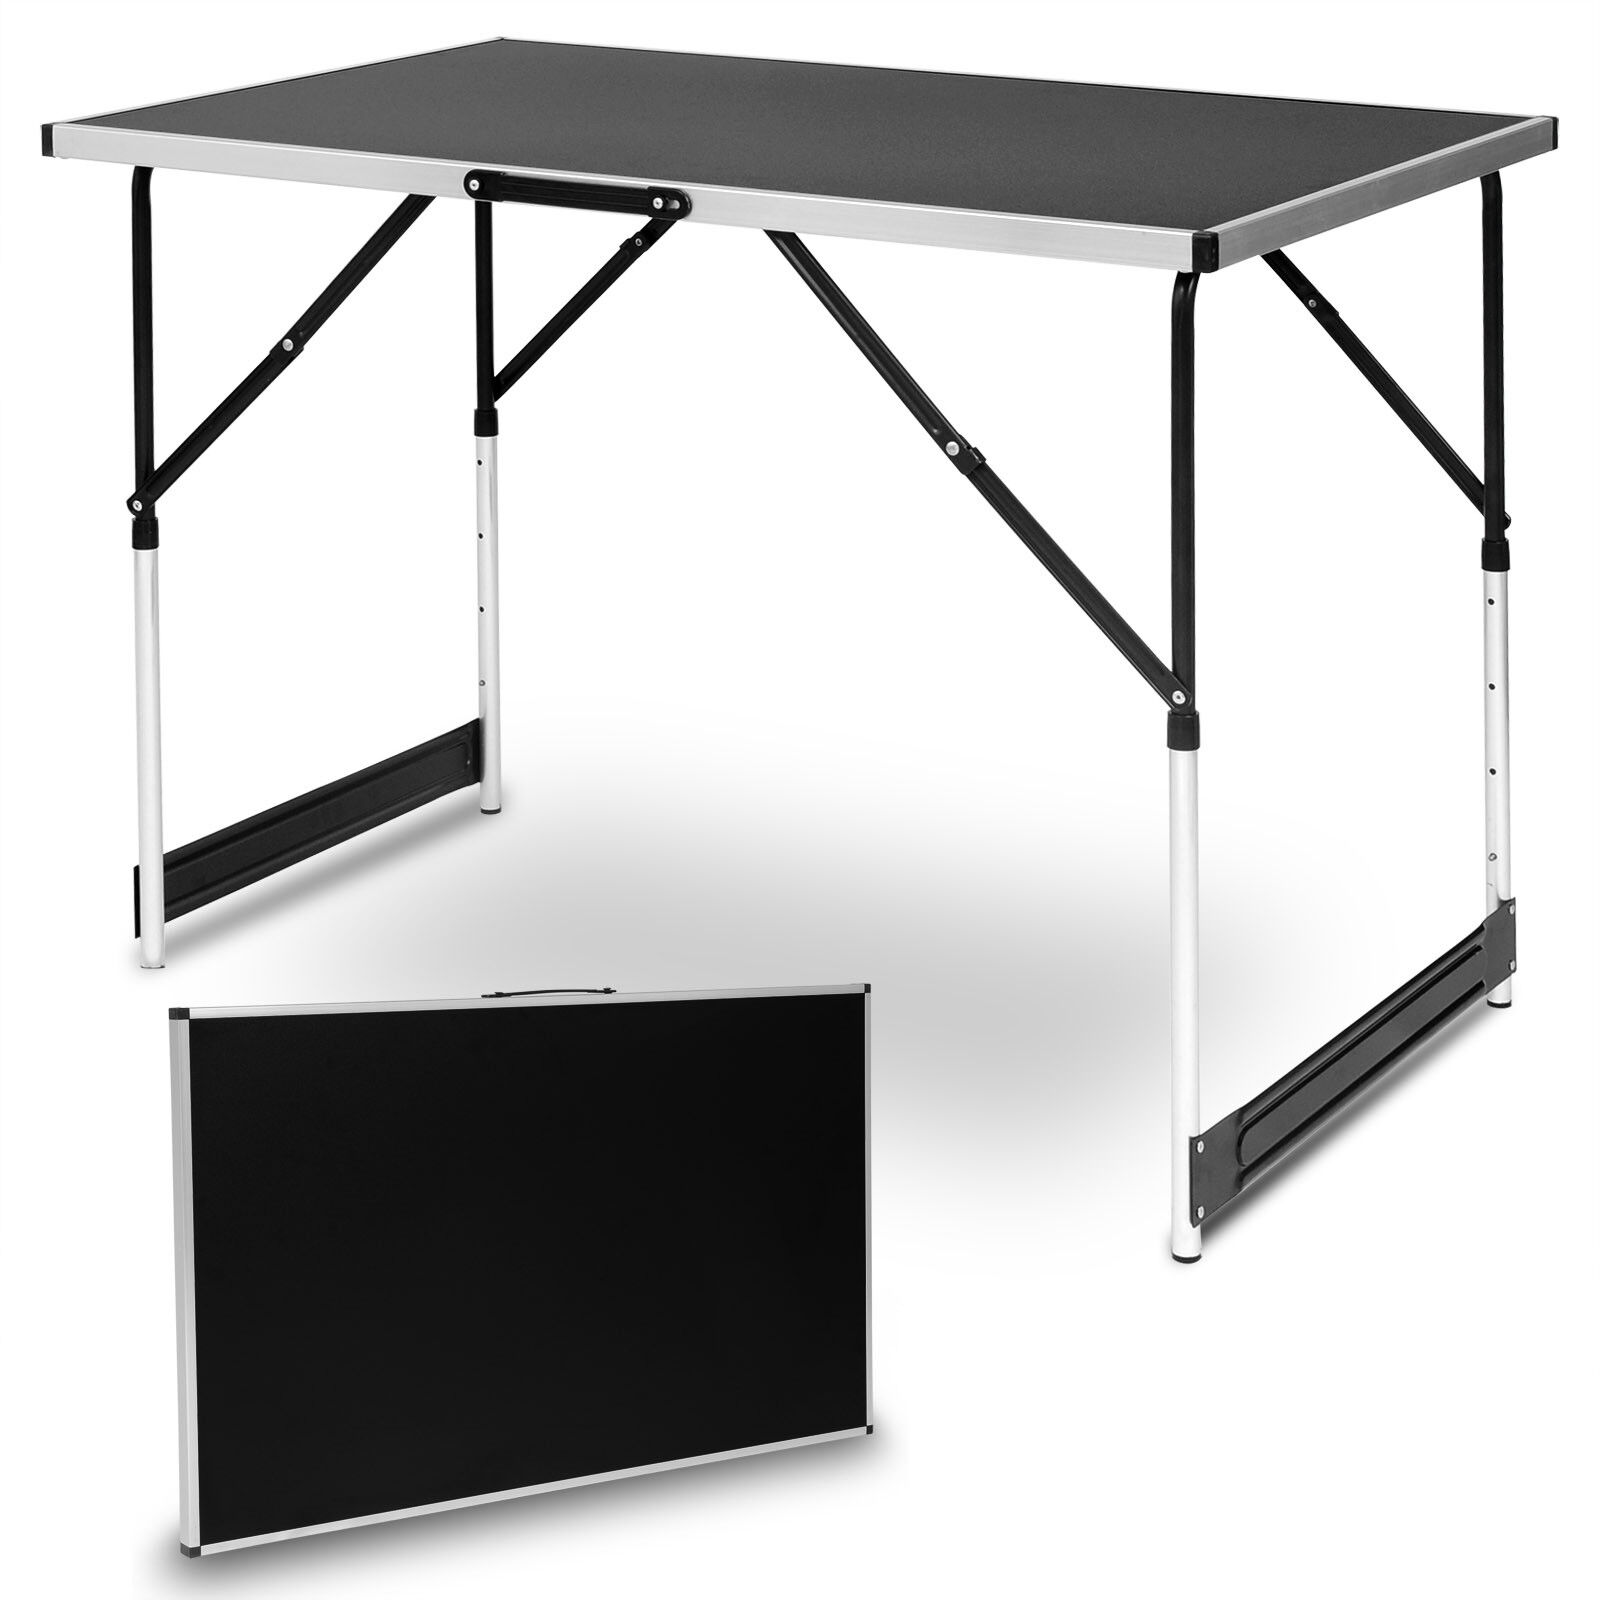 Folding Picnic Table Height Adjustable Garden Camping Table MDF CPT8121sz